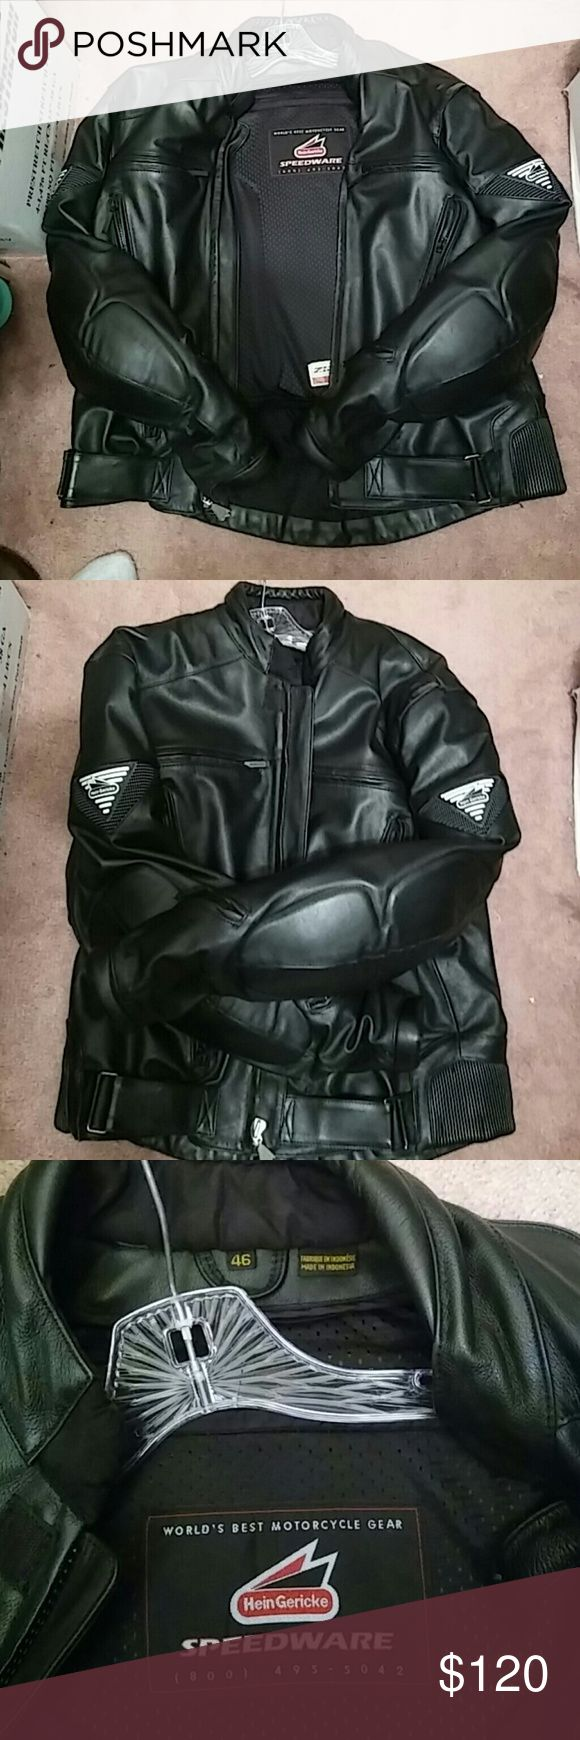 Motorcycle Leather Jacket..AUTHENTIC GEAR!!! BLACK FRIDAY SALE Size is both MEDIUM, LARGE and almost extra large. Purchased this just over 2yrs for $485!!!..This is Authentic Gericke Motorcycle Gear . The only signs of use is a tiny scratch/ hole/tear  like 8mm diameter behind the right wrist side of the jacket and a tiny..really tiny peel on the shoulder through accident. This gear weigh approx 13-18lbs... Very heavy and made from genuine leather. All protective foams on shoulder and arms…